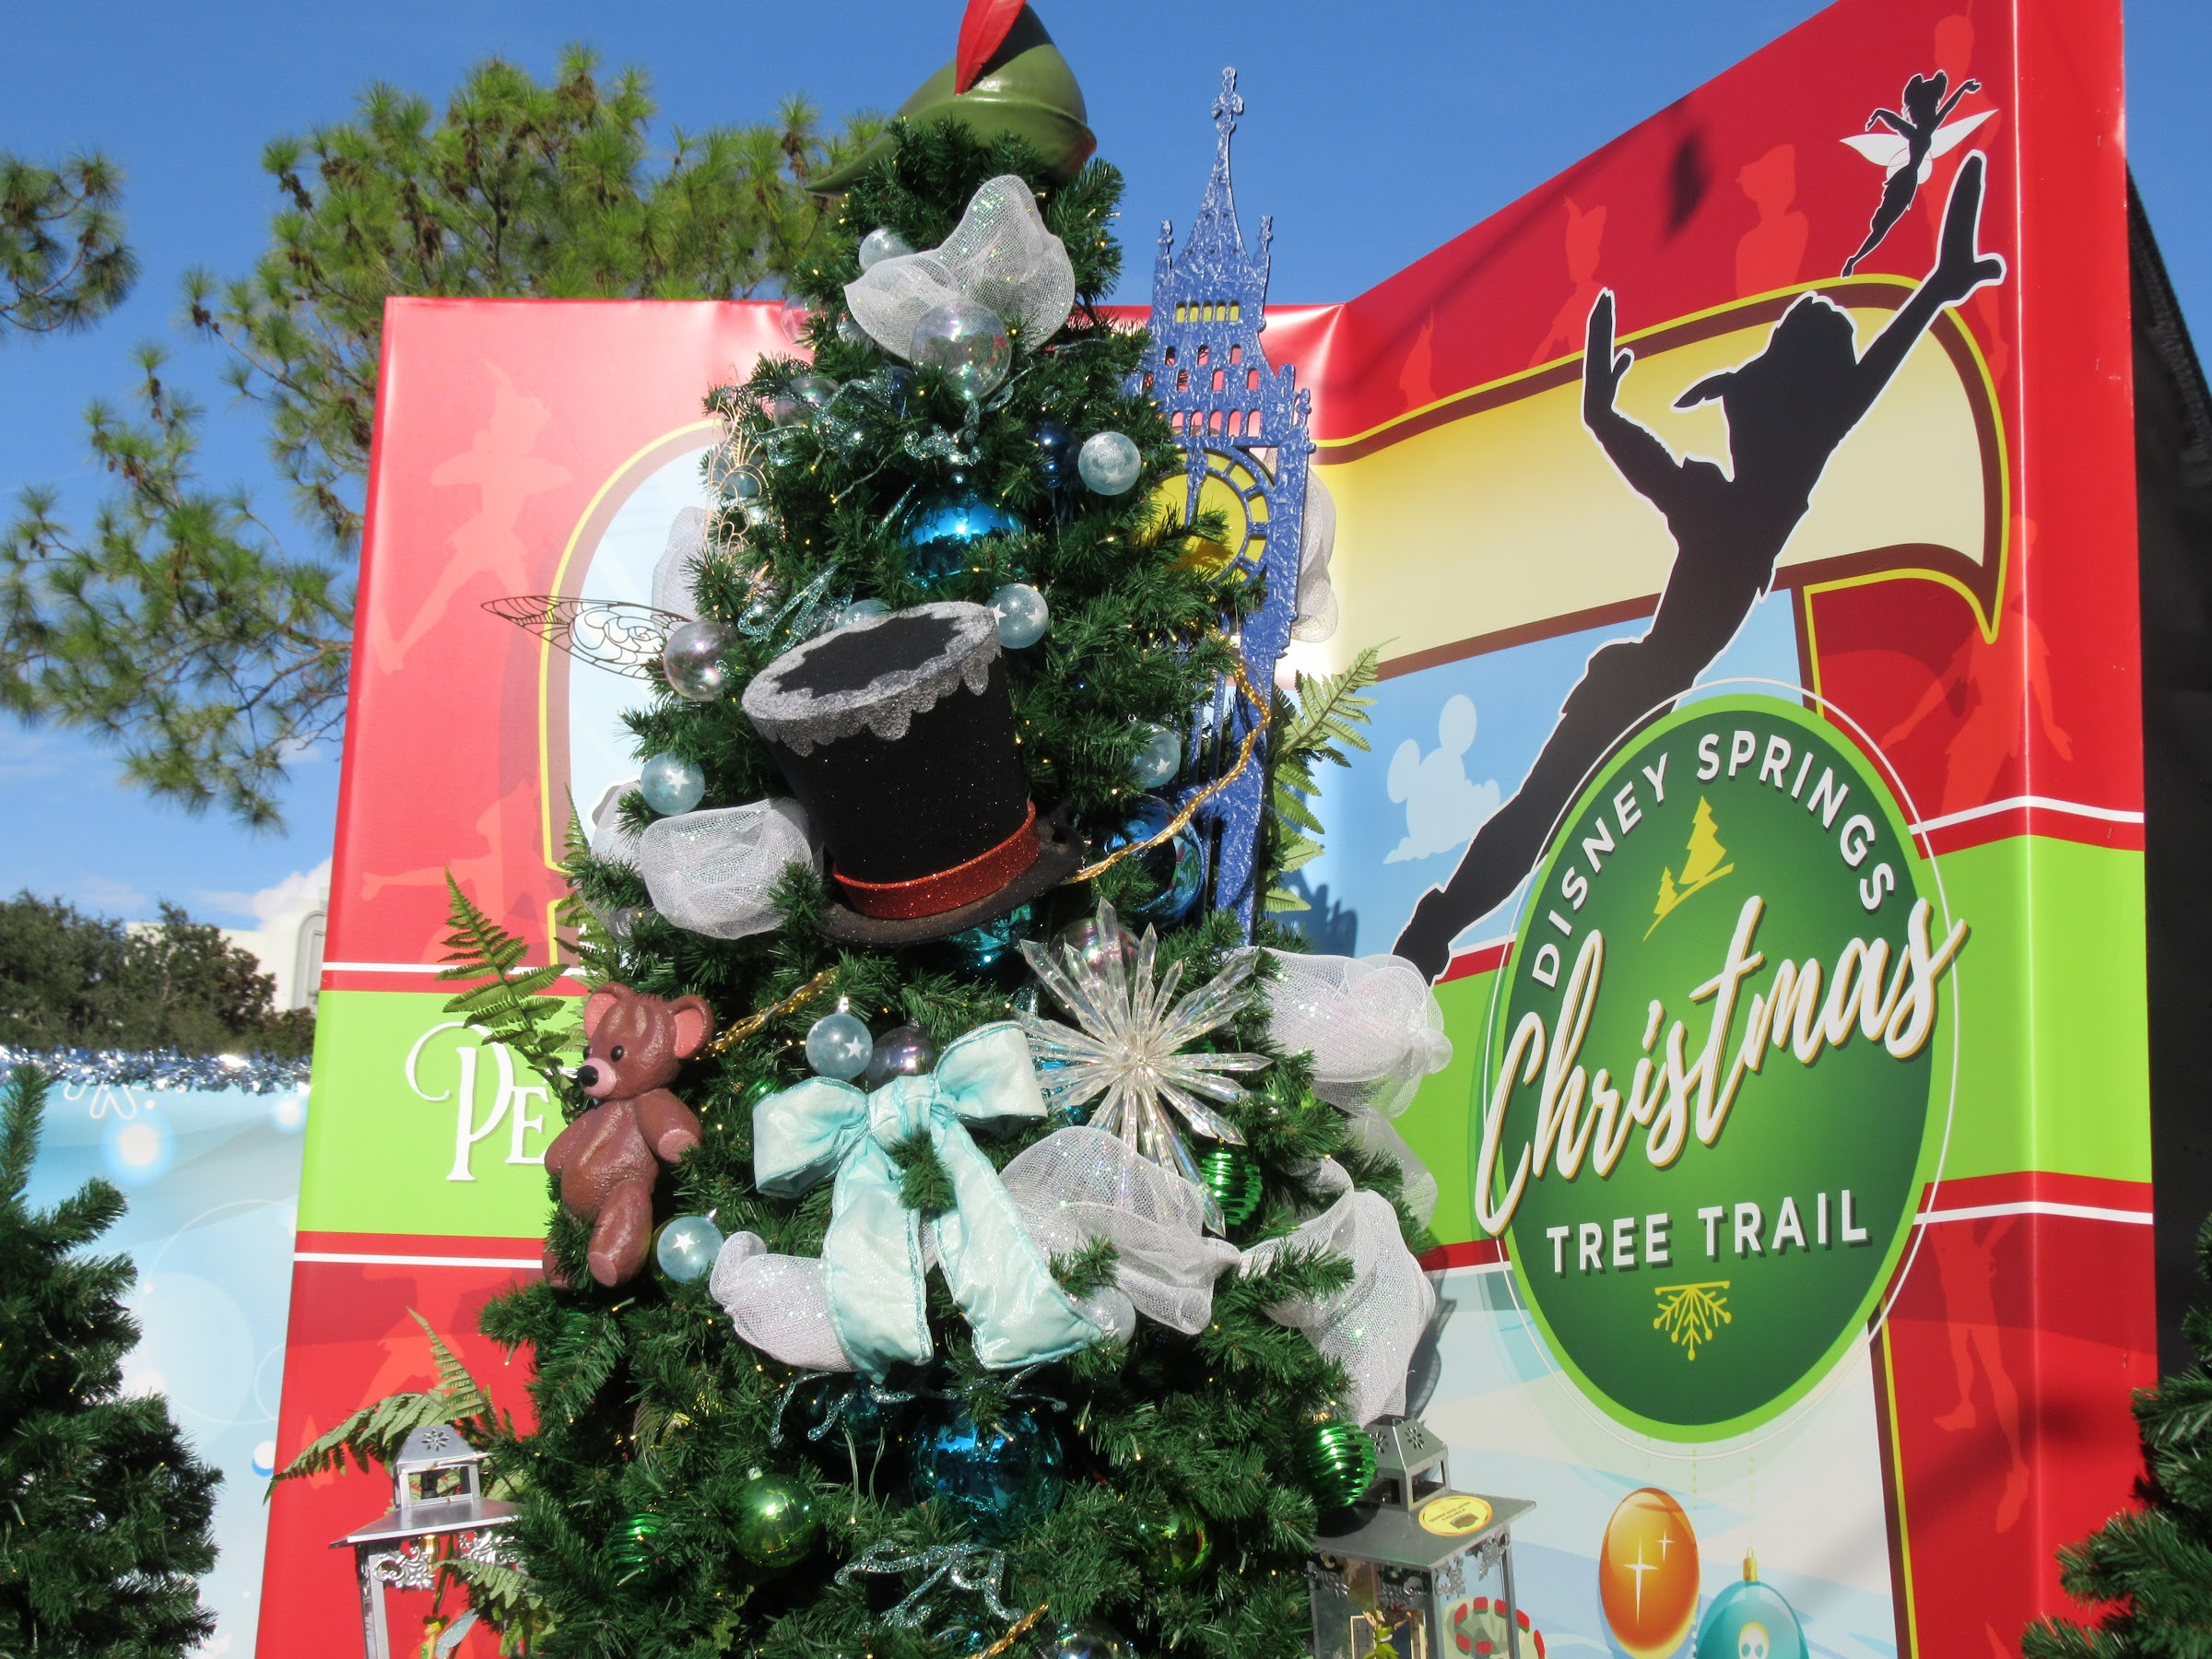 If you are at Disney World in December, make sure you stop by Disney Springs to enjoy the Disney Springs Christmas Tree Trail and other fun, festive experiences!